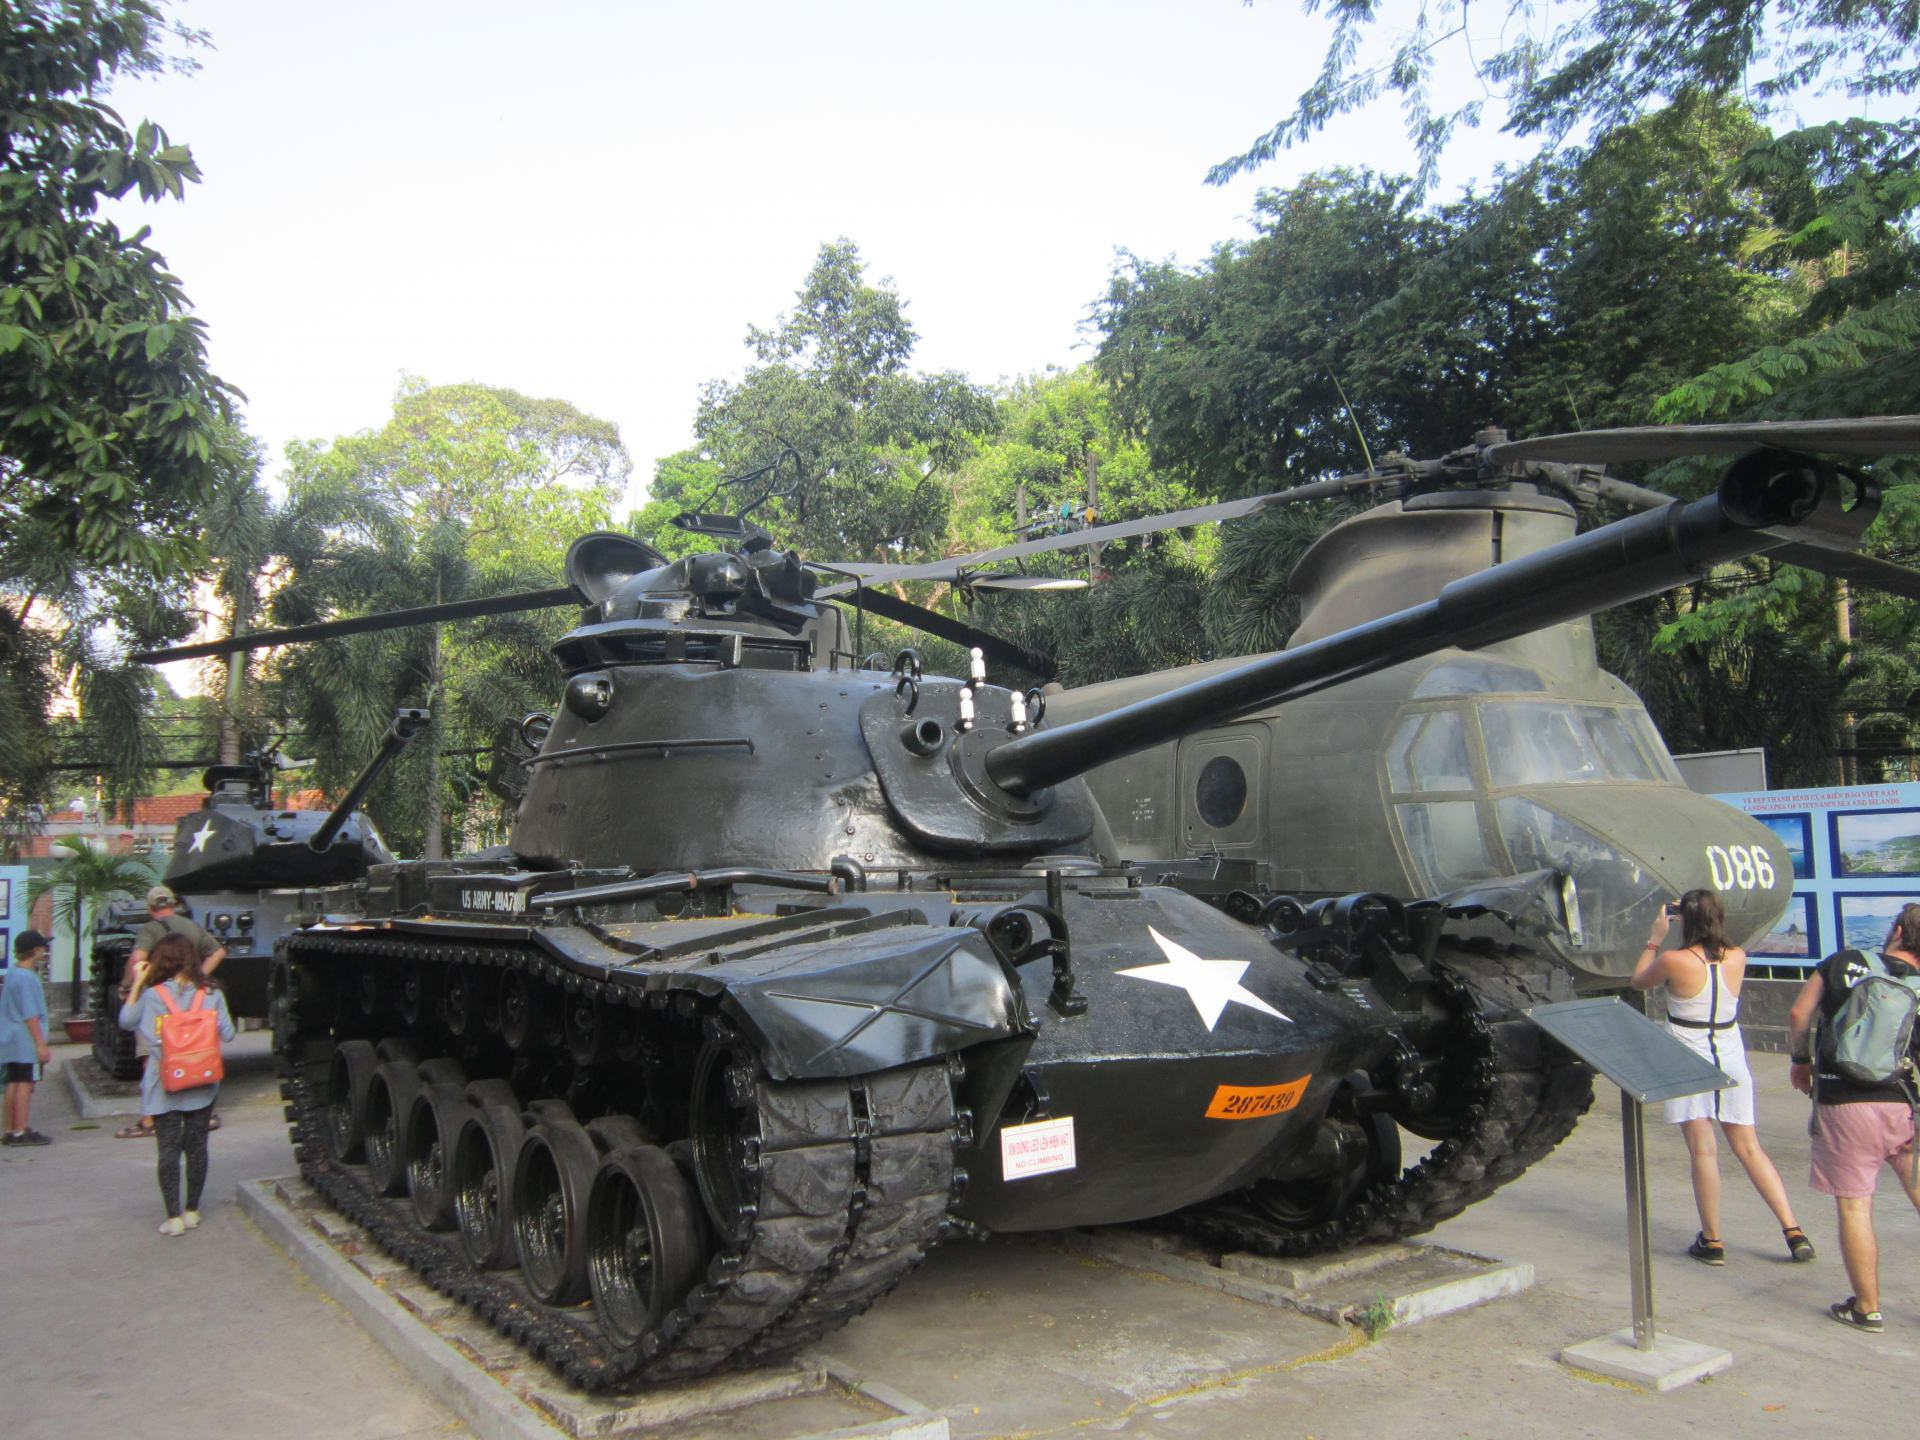 A US tank and Helicopter outside the War Remnants Museum in Vietnam. One of my favourite museums in Southeast Asia